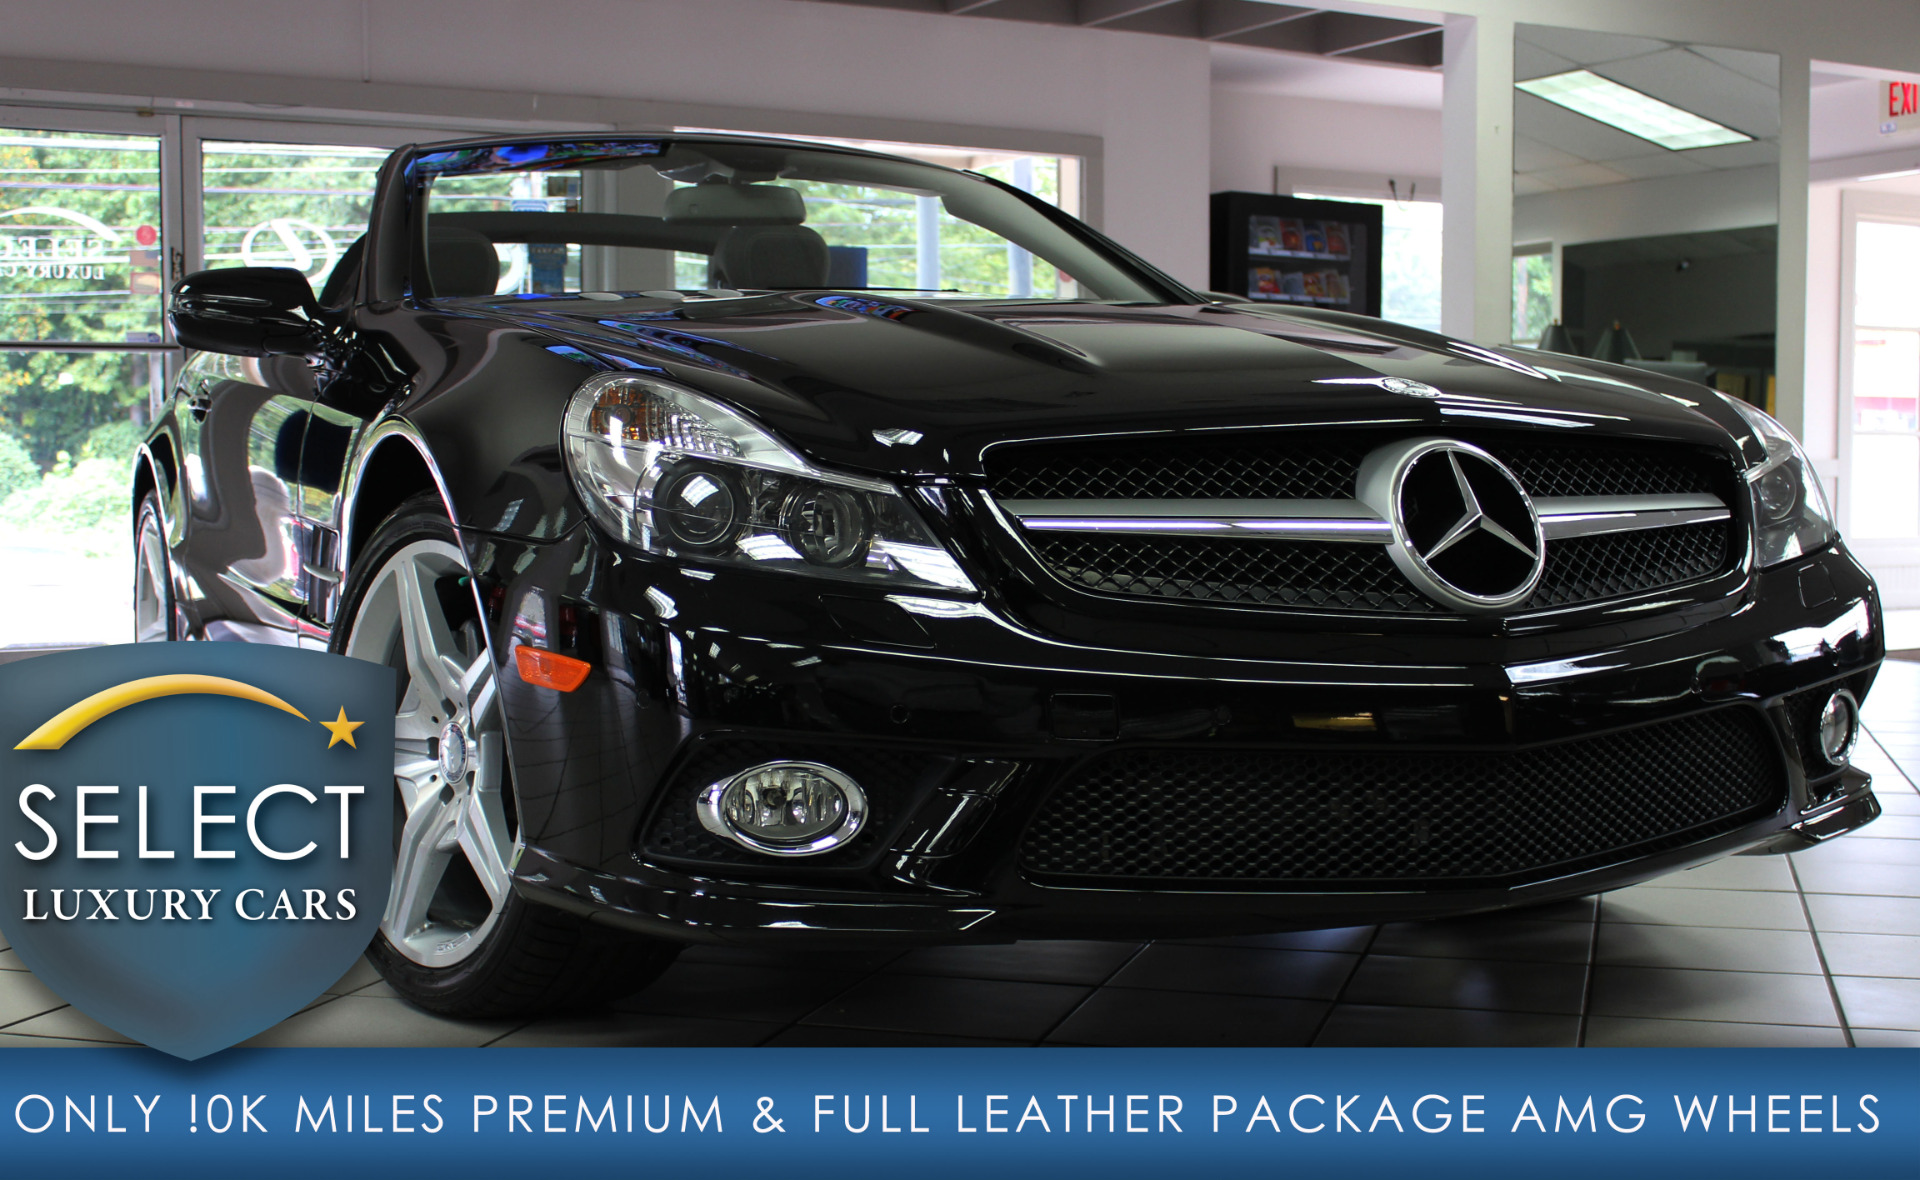 Used 2011 mercedes benz sl class sl550 cabriolet for Mercedes benz sl550 used